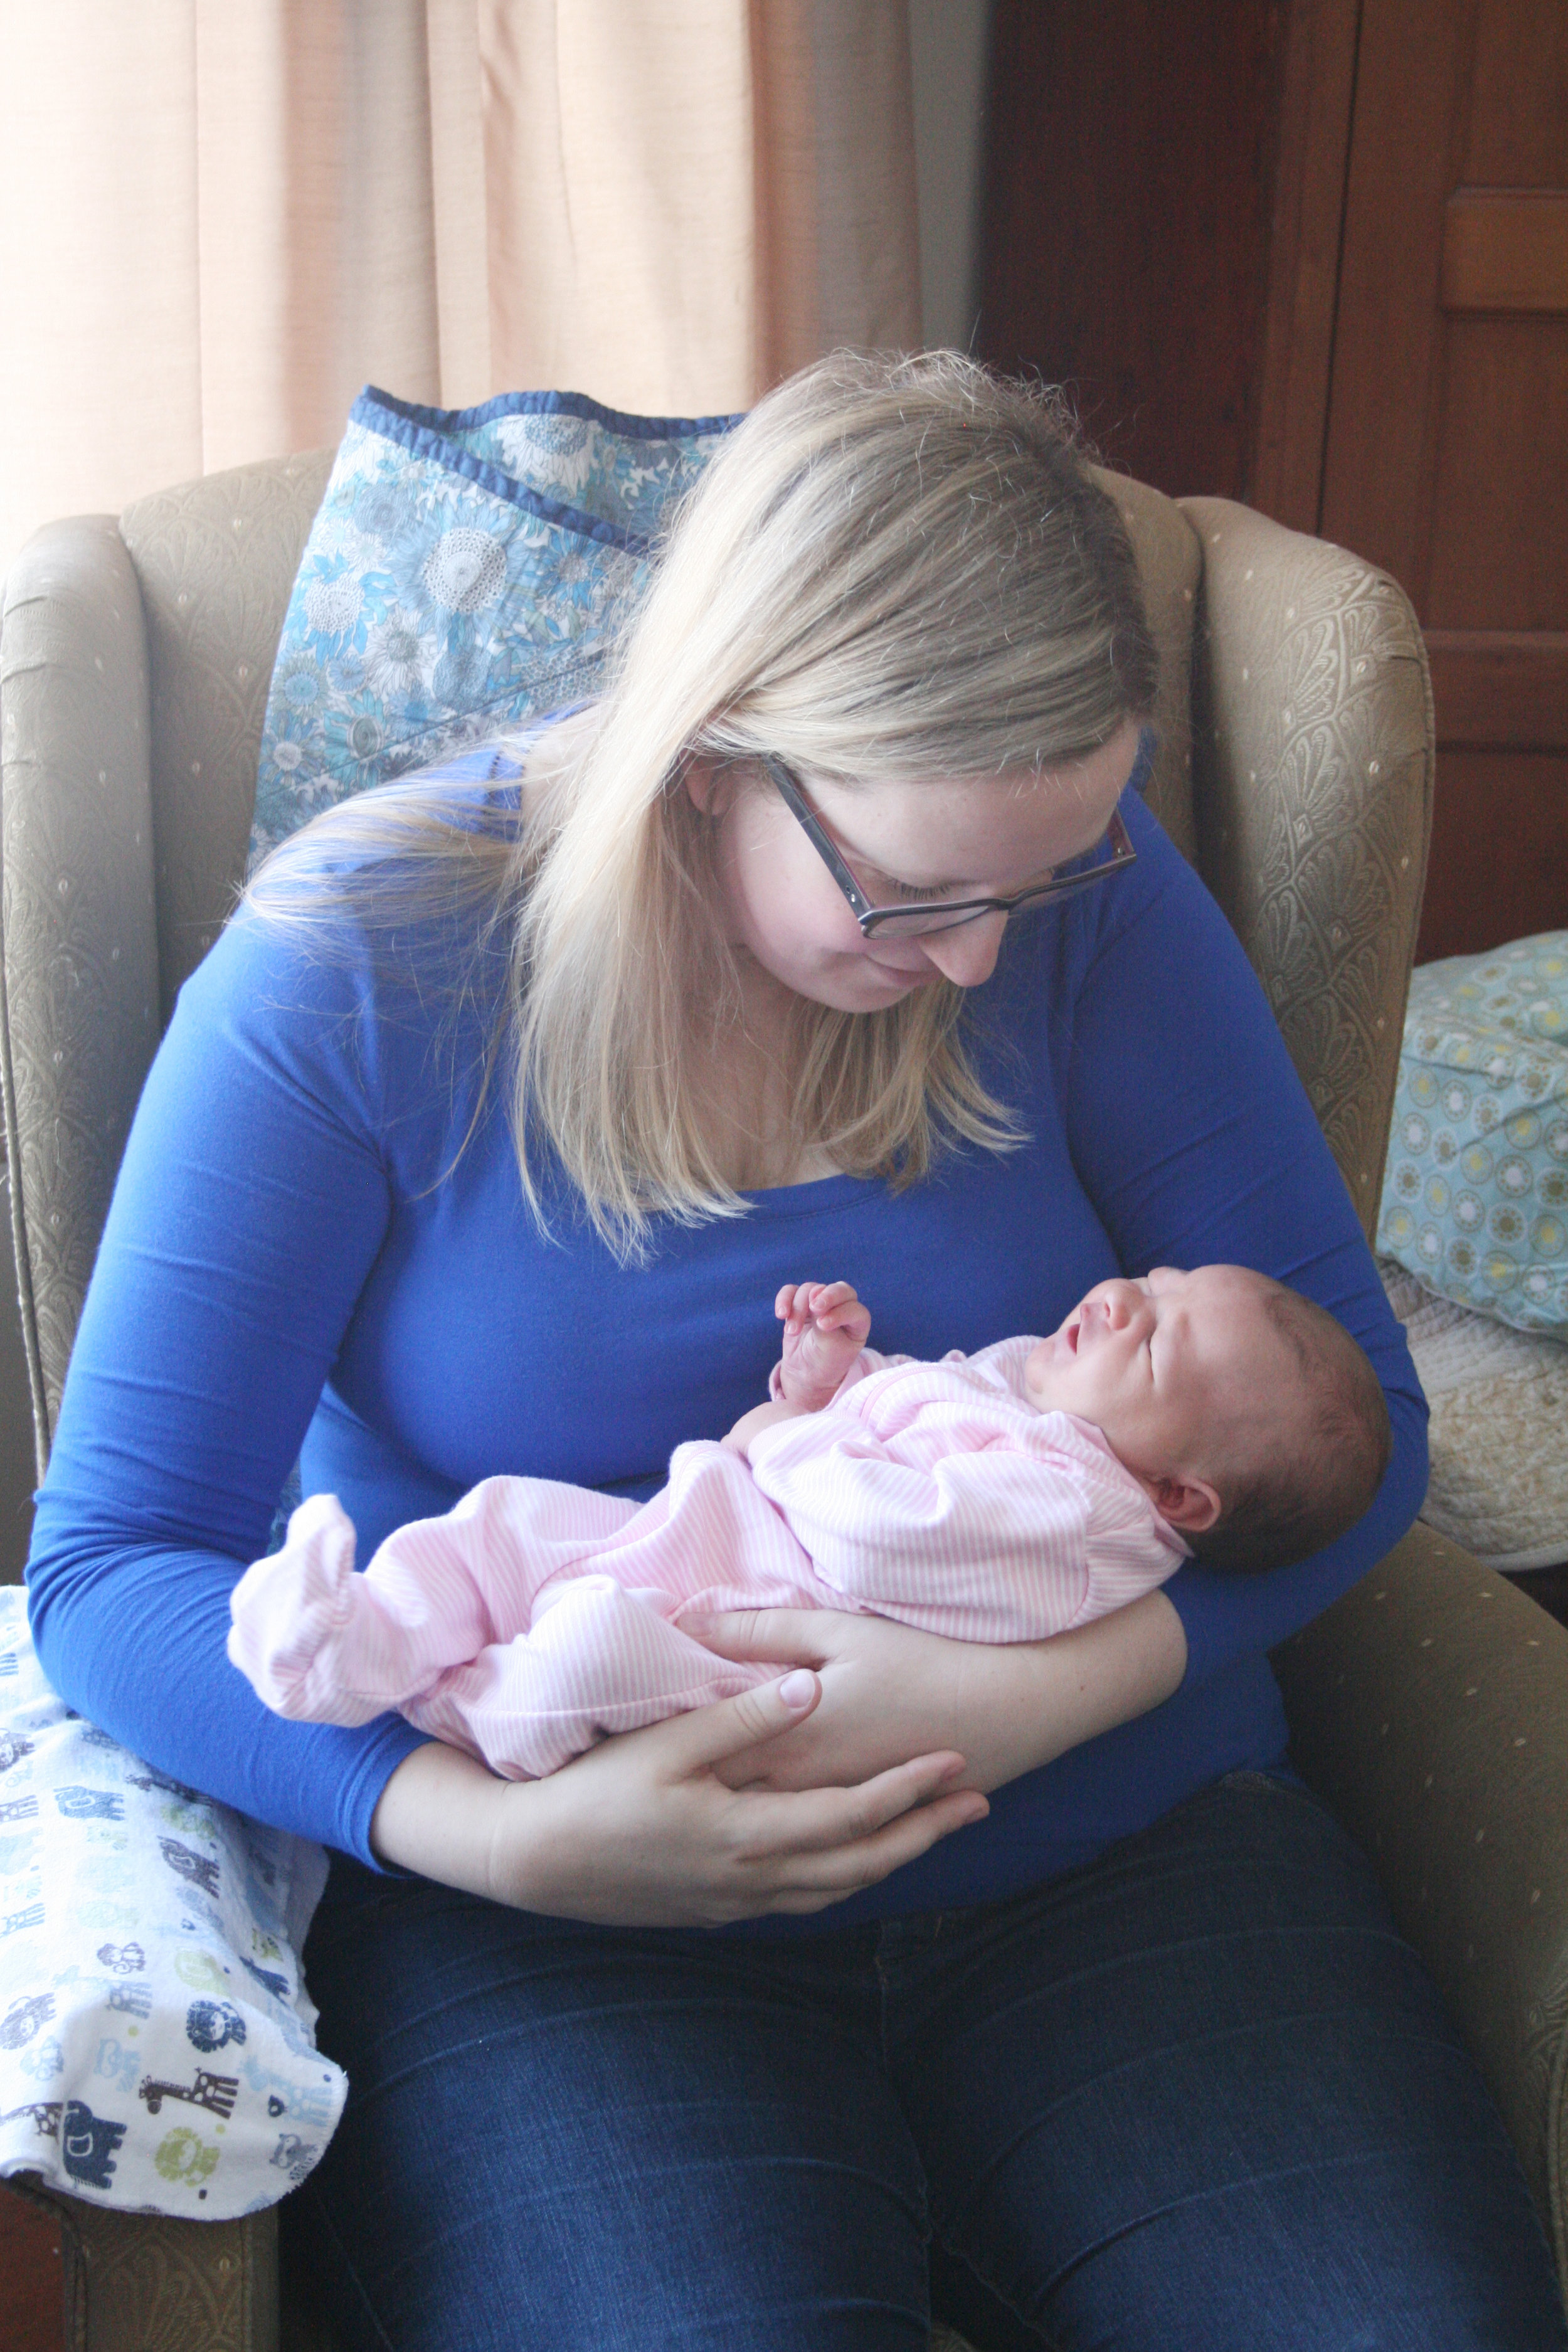 Holding Molly when she was only a few days old.